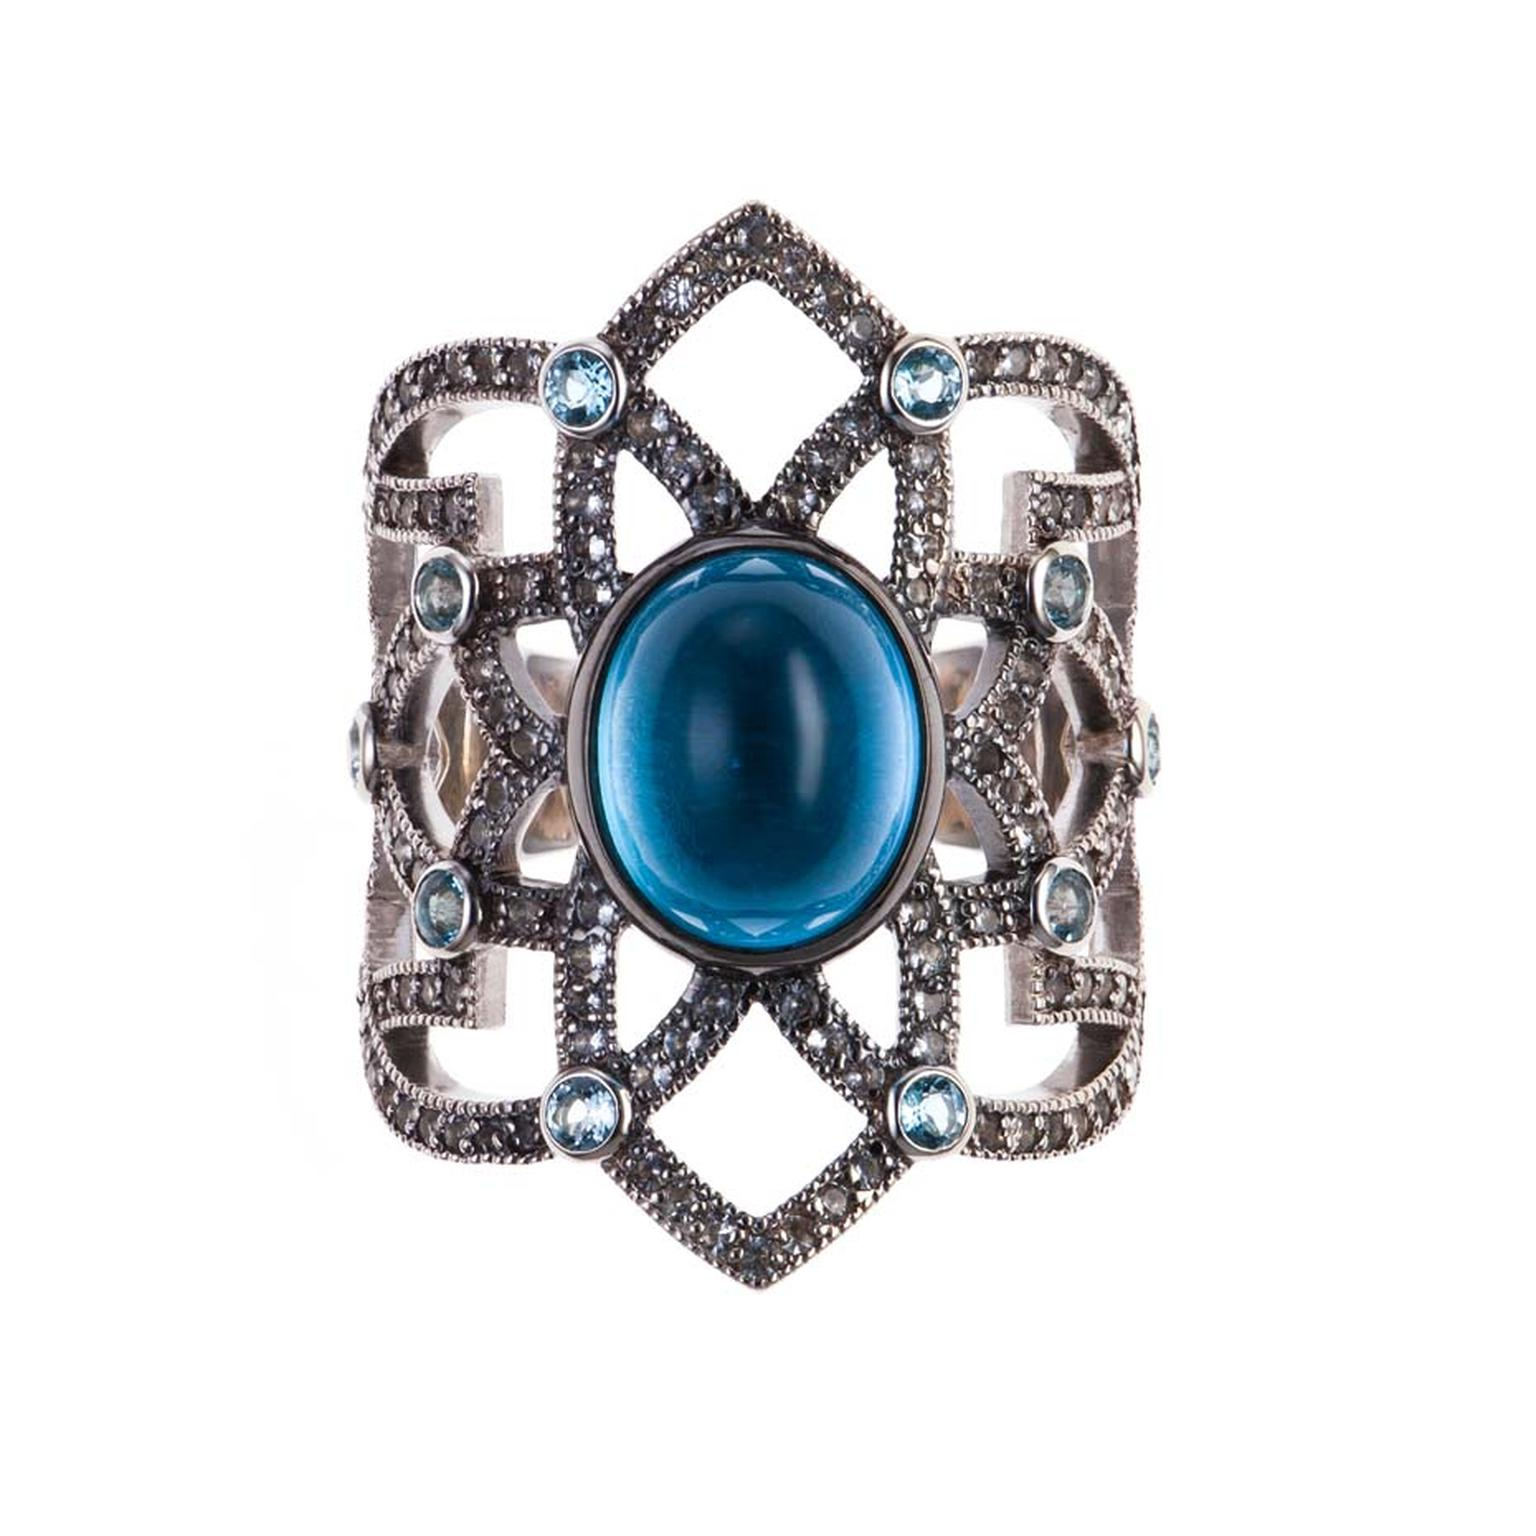 Petr Axenoff silver Tsarevich ring with blue topaz and sapphires